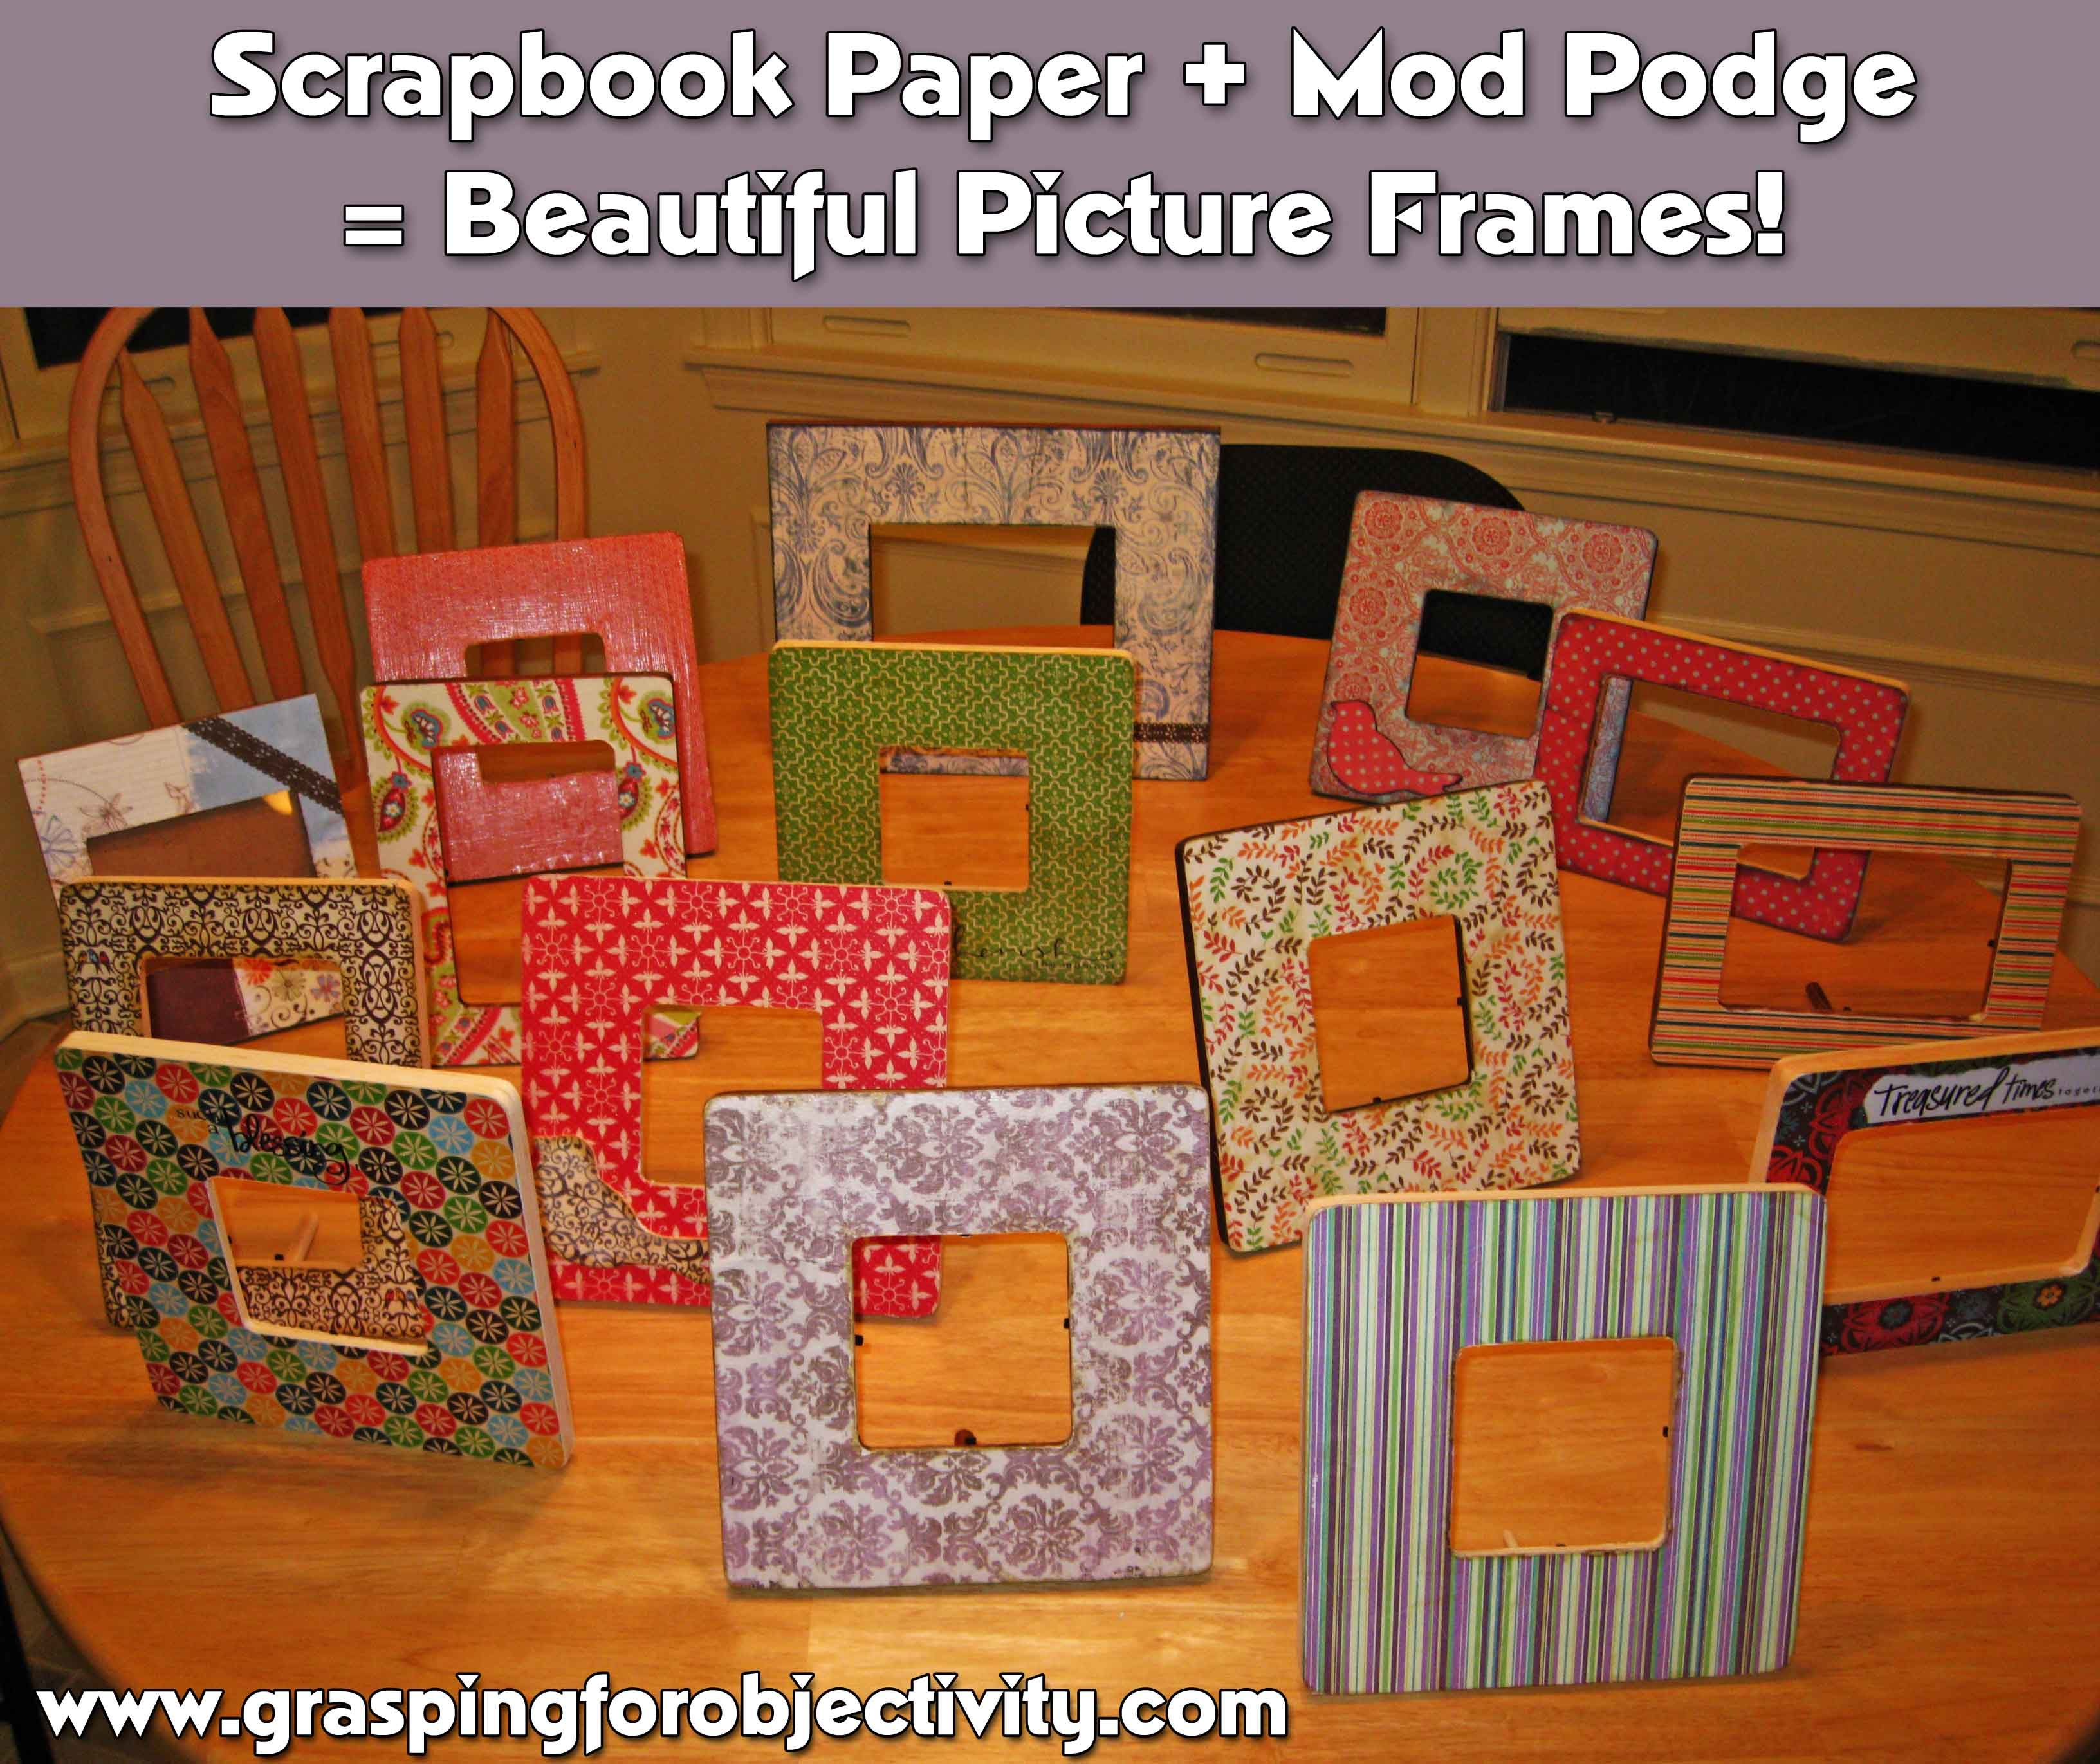 How to make beautiful picture frames with mod podge and scrapbook how to make beautiful picture frames with mod podge and scrapbook paper jeuxipadfo Image collections